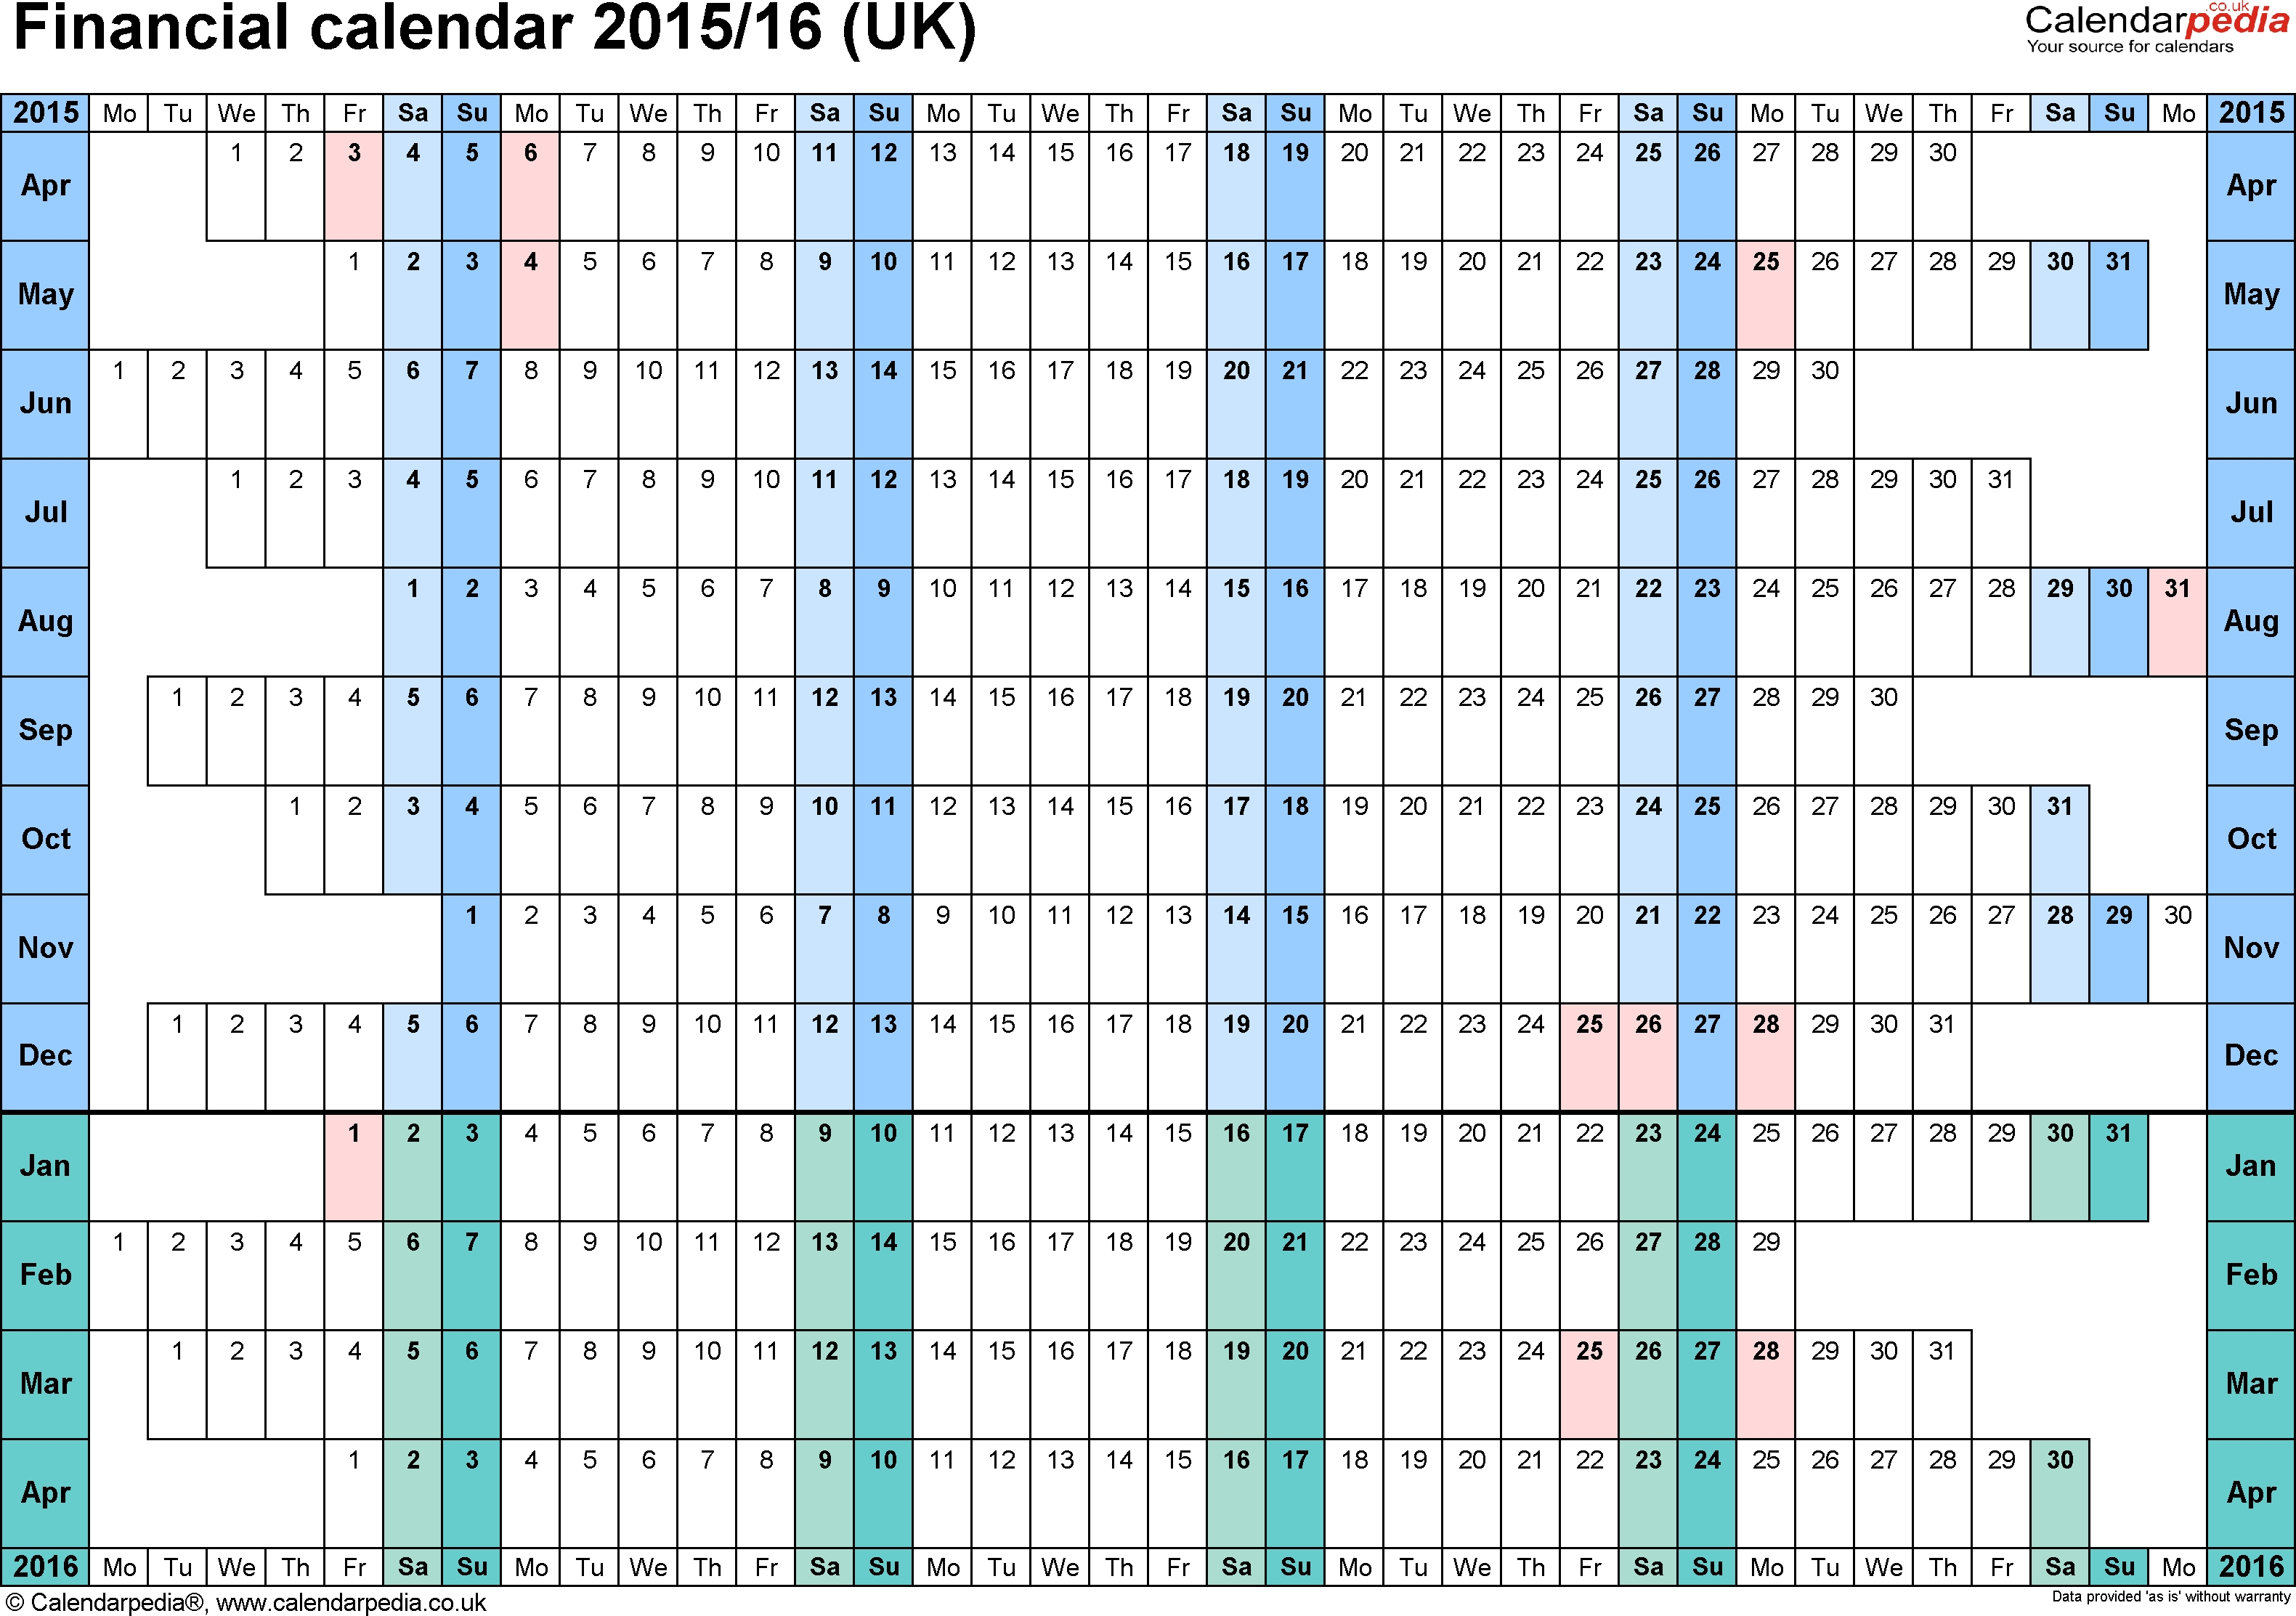 Financial Calendars 2015/16 (Uk) In Pdf Format with regard to Hmrc Tax Calendar 2019 2020